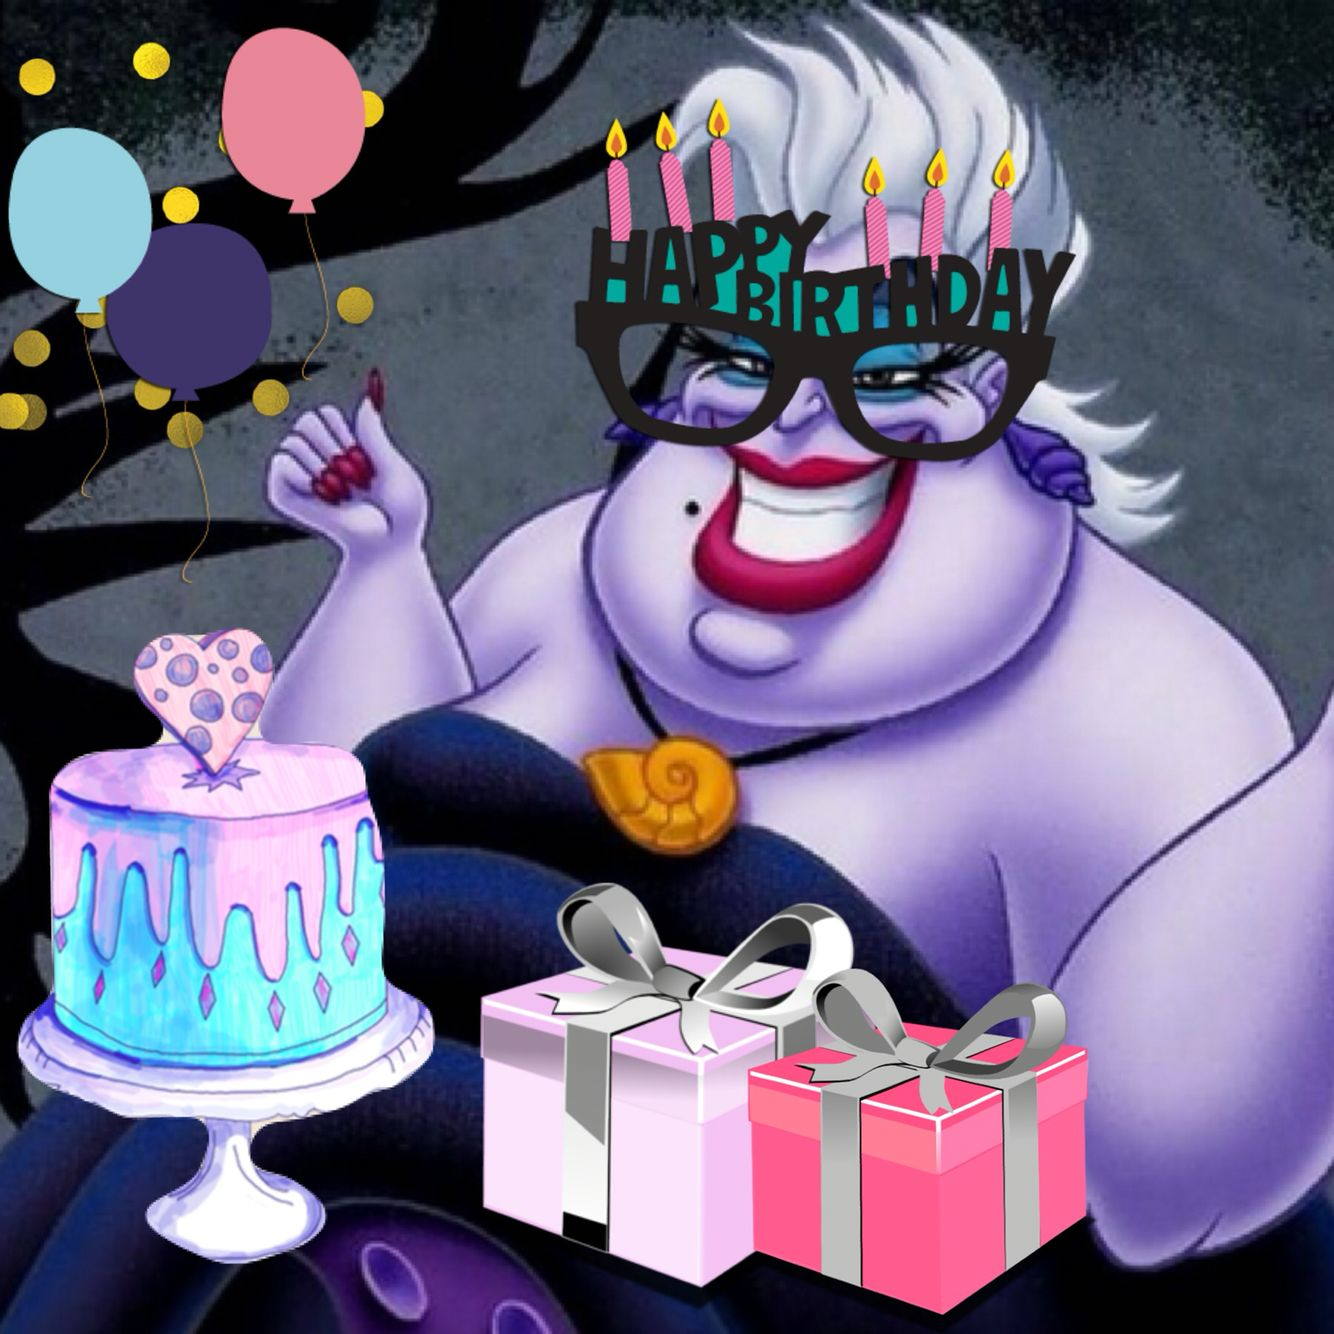 b7f968bccf46f0d9bf7c7990c2331e33 happy birthday ursula the little mermaid birthday party and gift